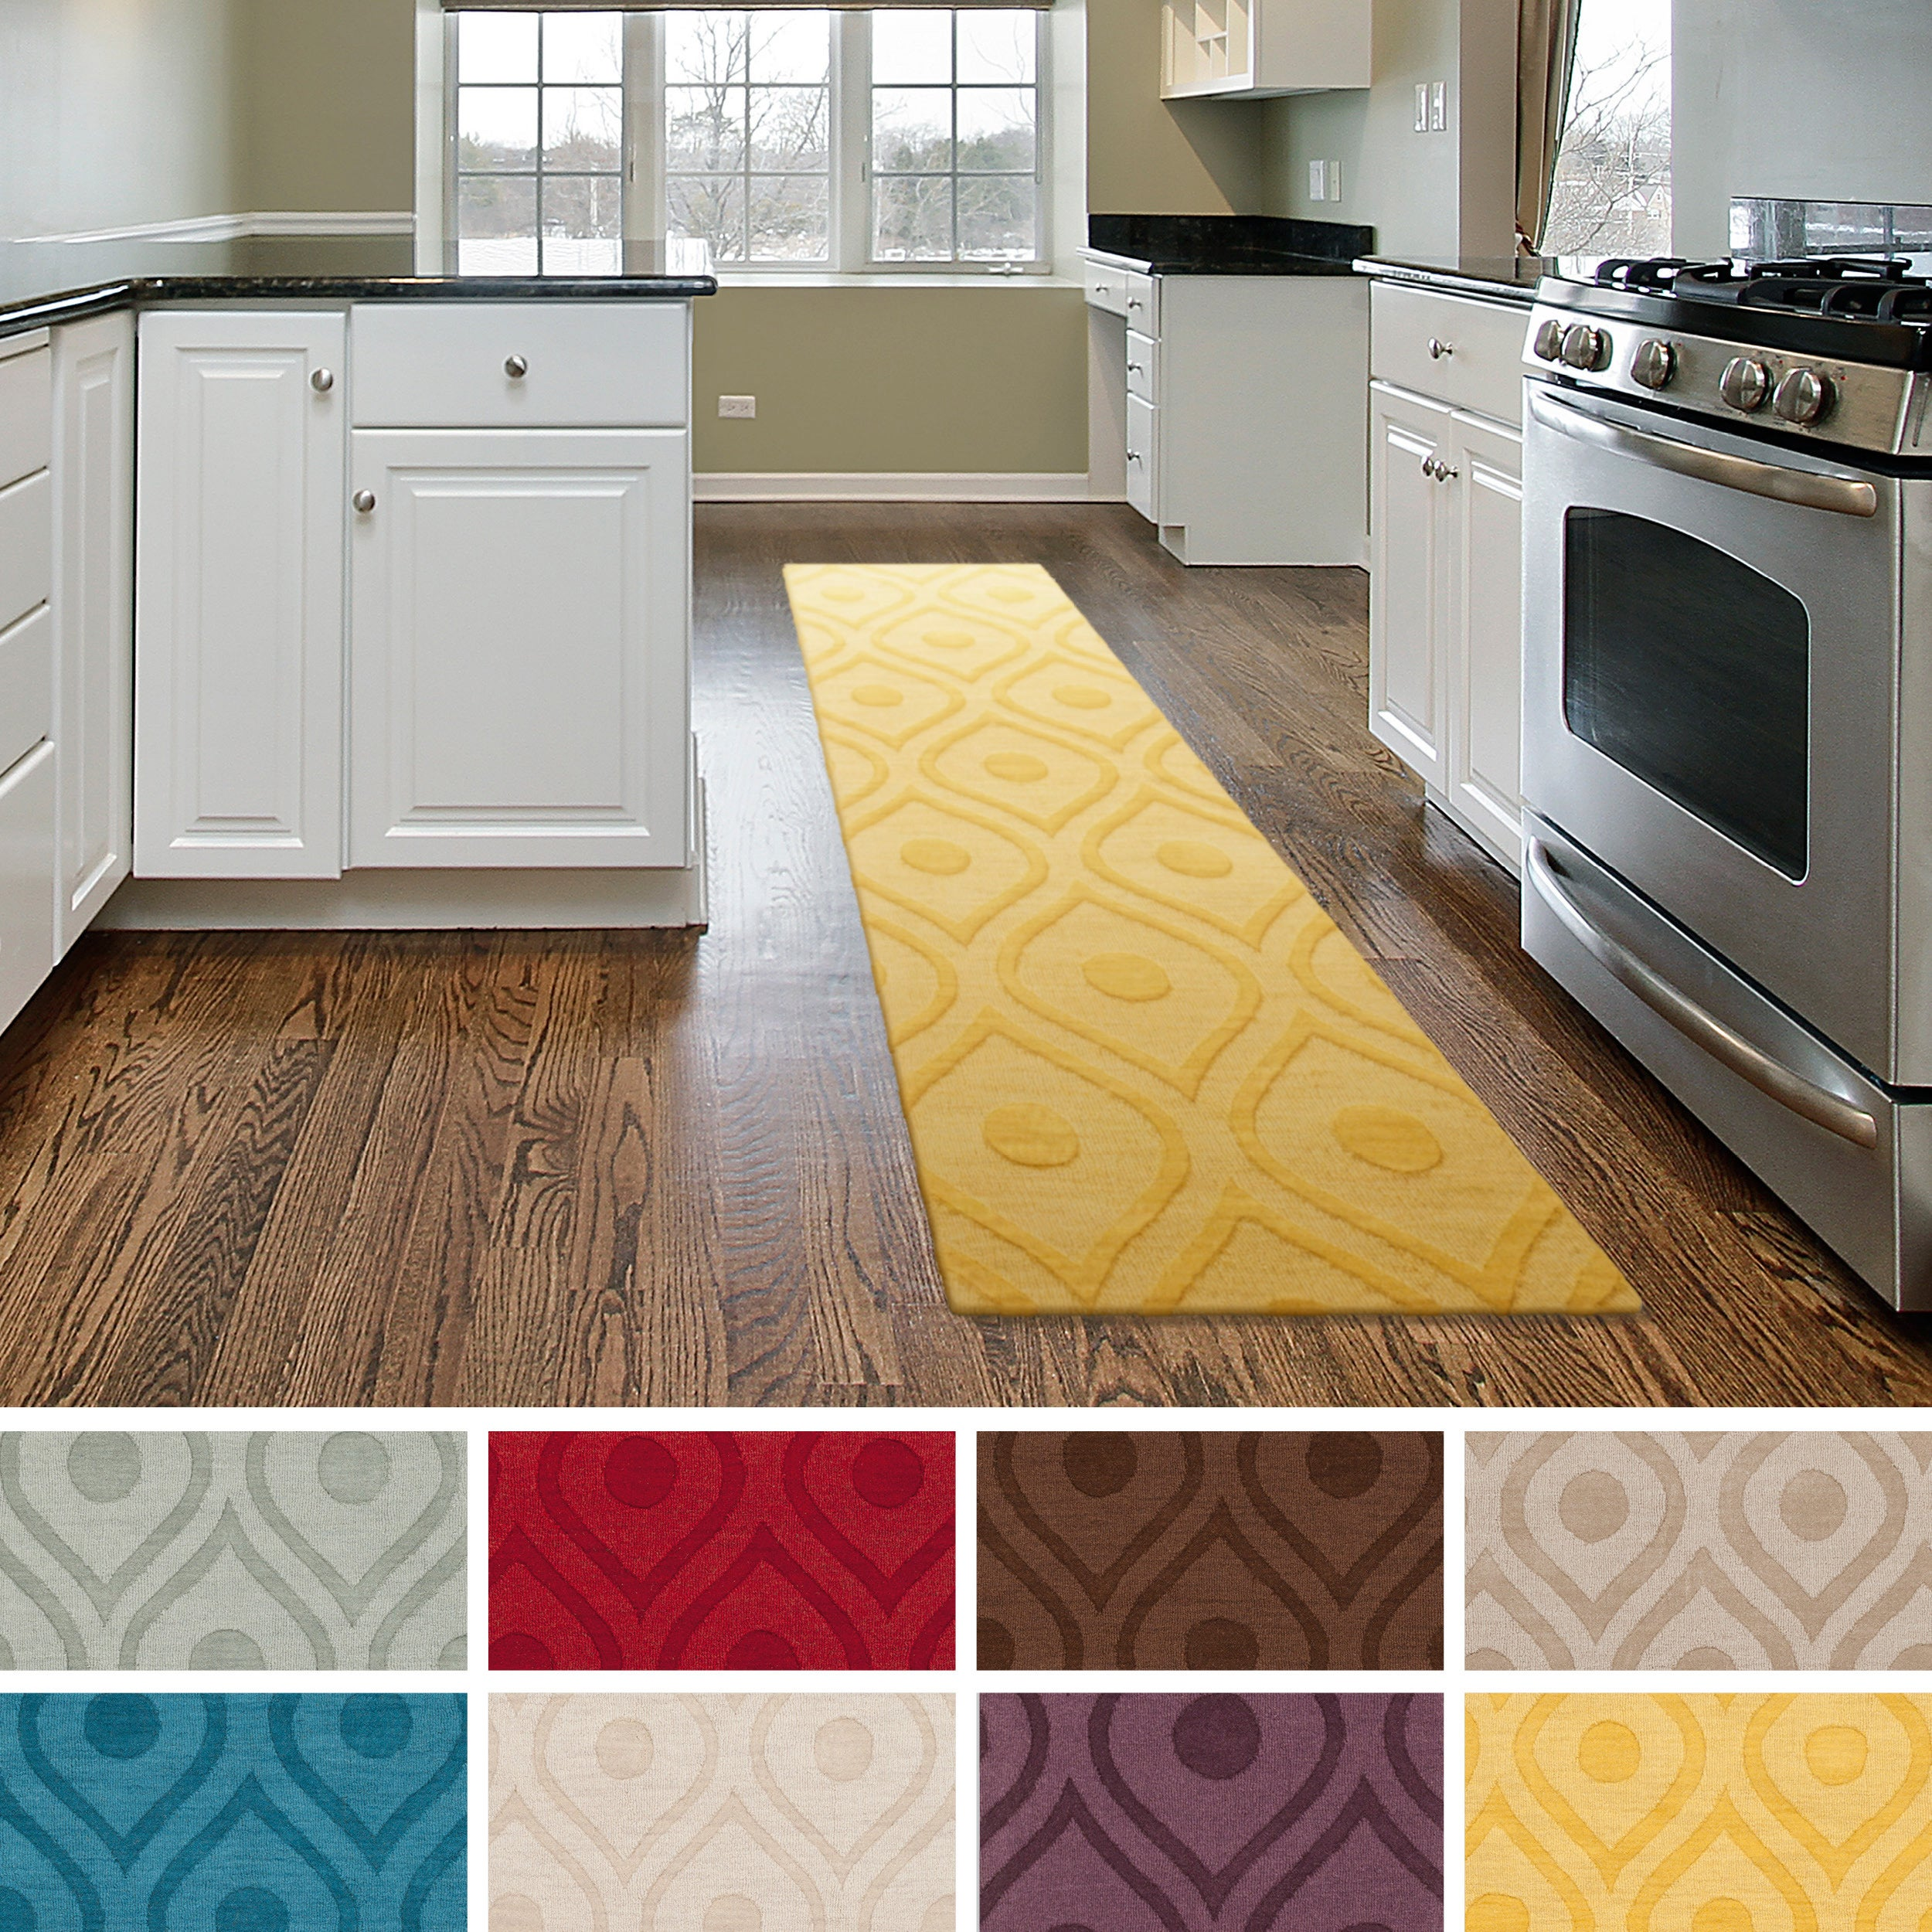 Artistic Weavers Hand-woven Abi Geometric Tone-on-Tone Wool Area Rug (2'3 x 12')